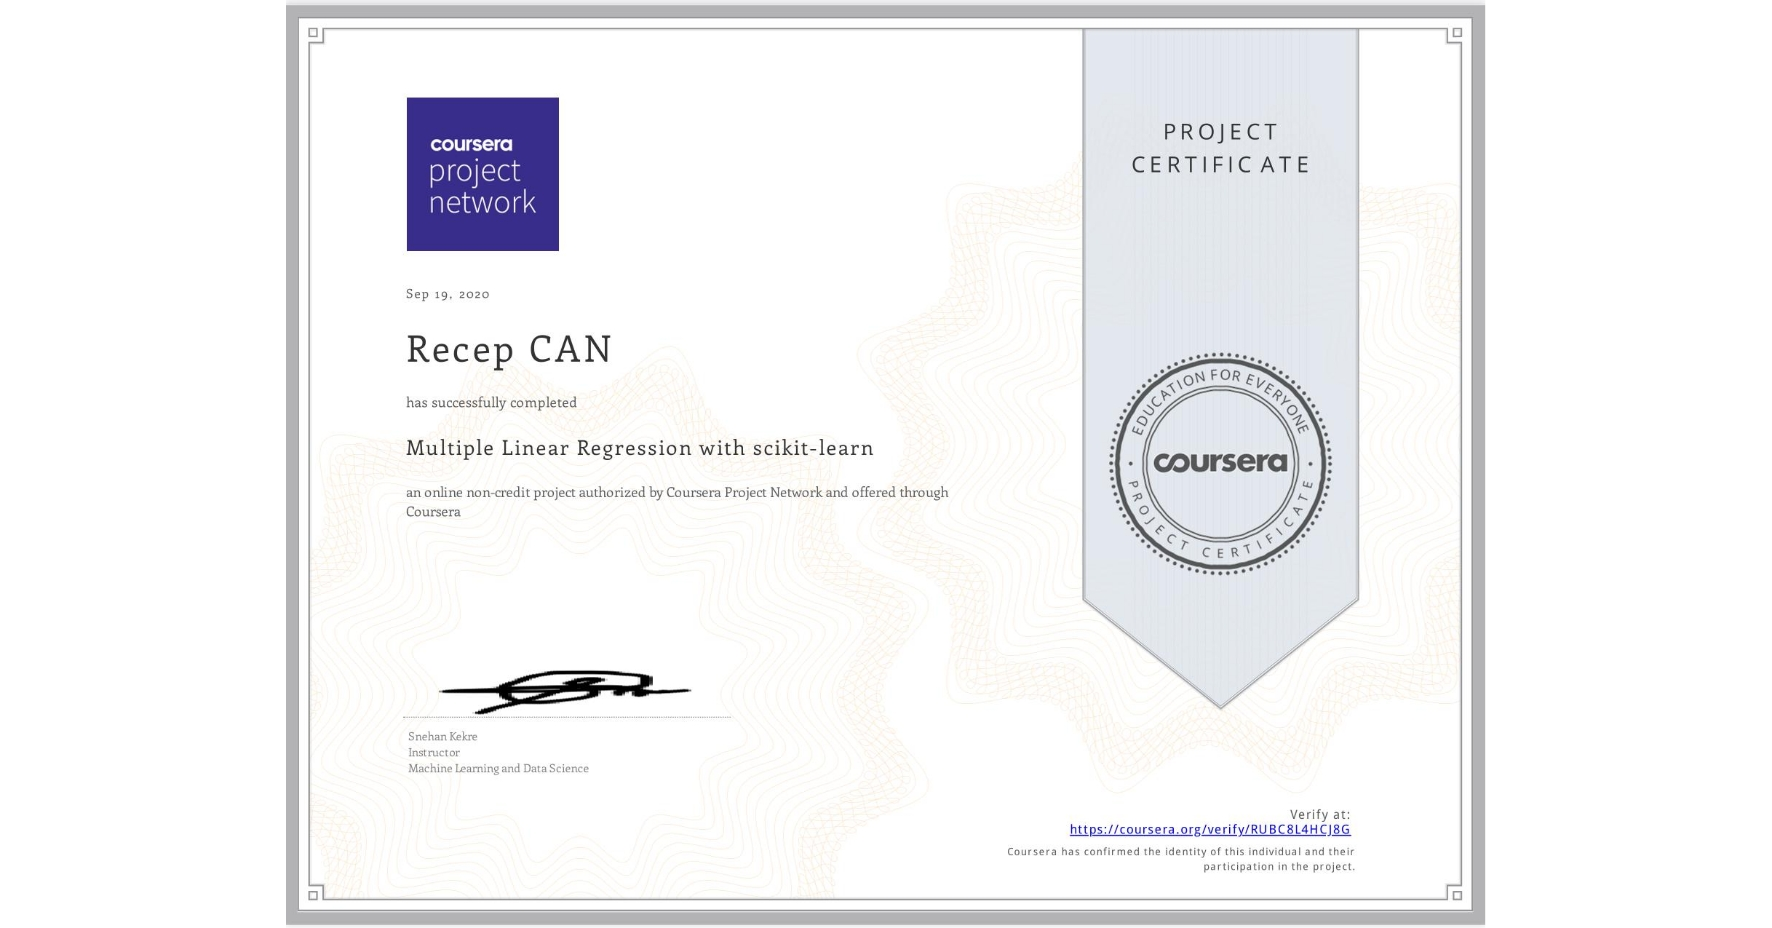 View certificate for Recep CAN, Multiple Linear Regression with scikit-learn, an online non-credit course authorized by Coursera Project Network and offered through Coursera